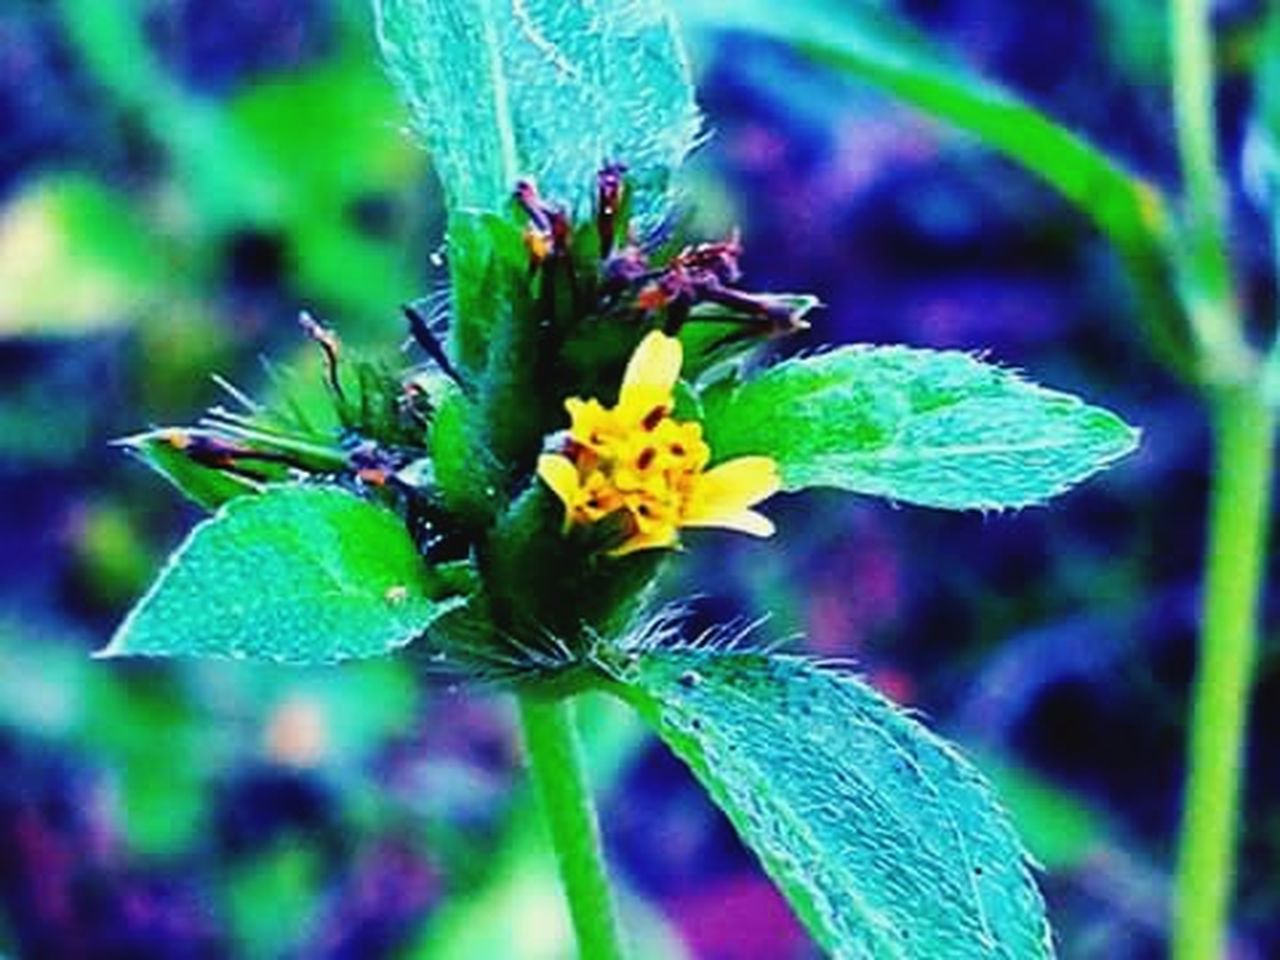 flower, green color, plant, nature, fragility, growth, leaf, focus on foreground, purple, close-up, beauty in nature, day, freshness, outdoors, no people, flower head, multi colored